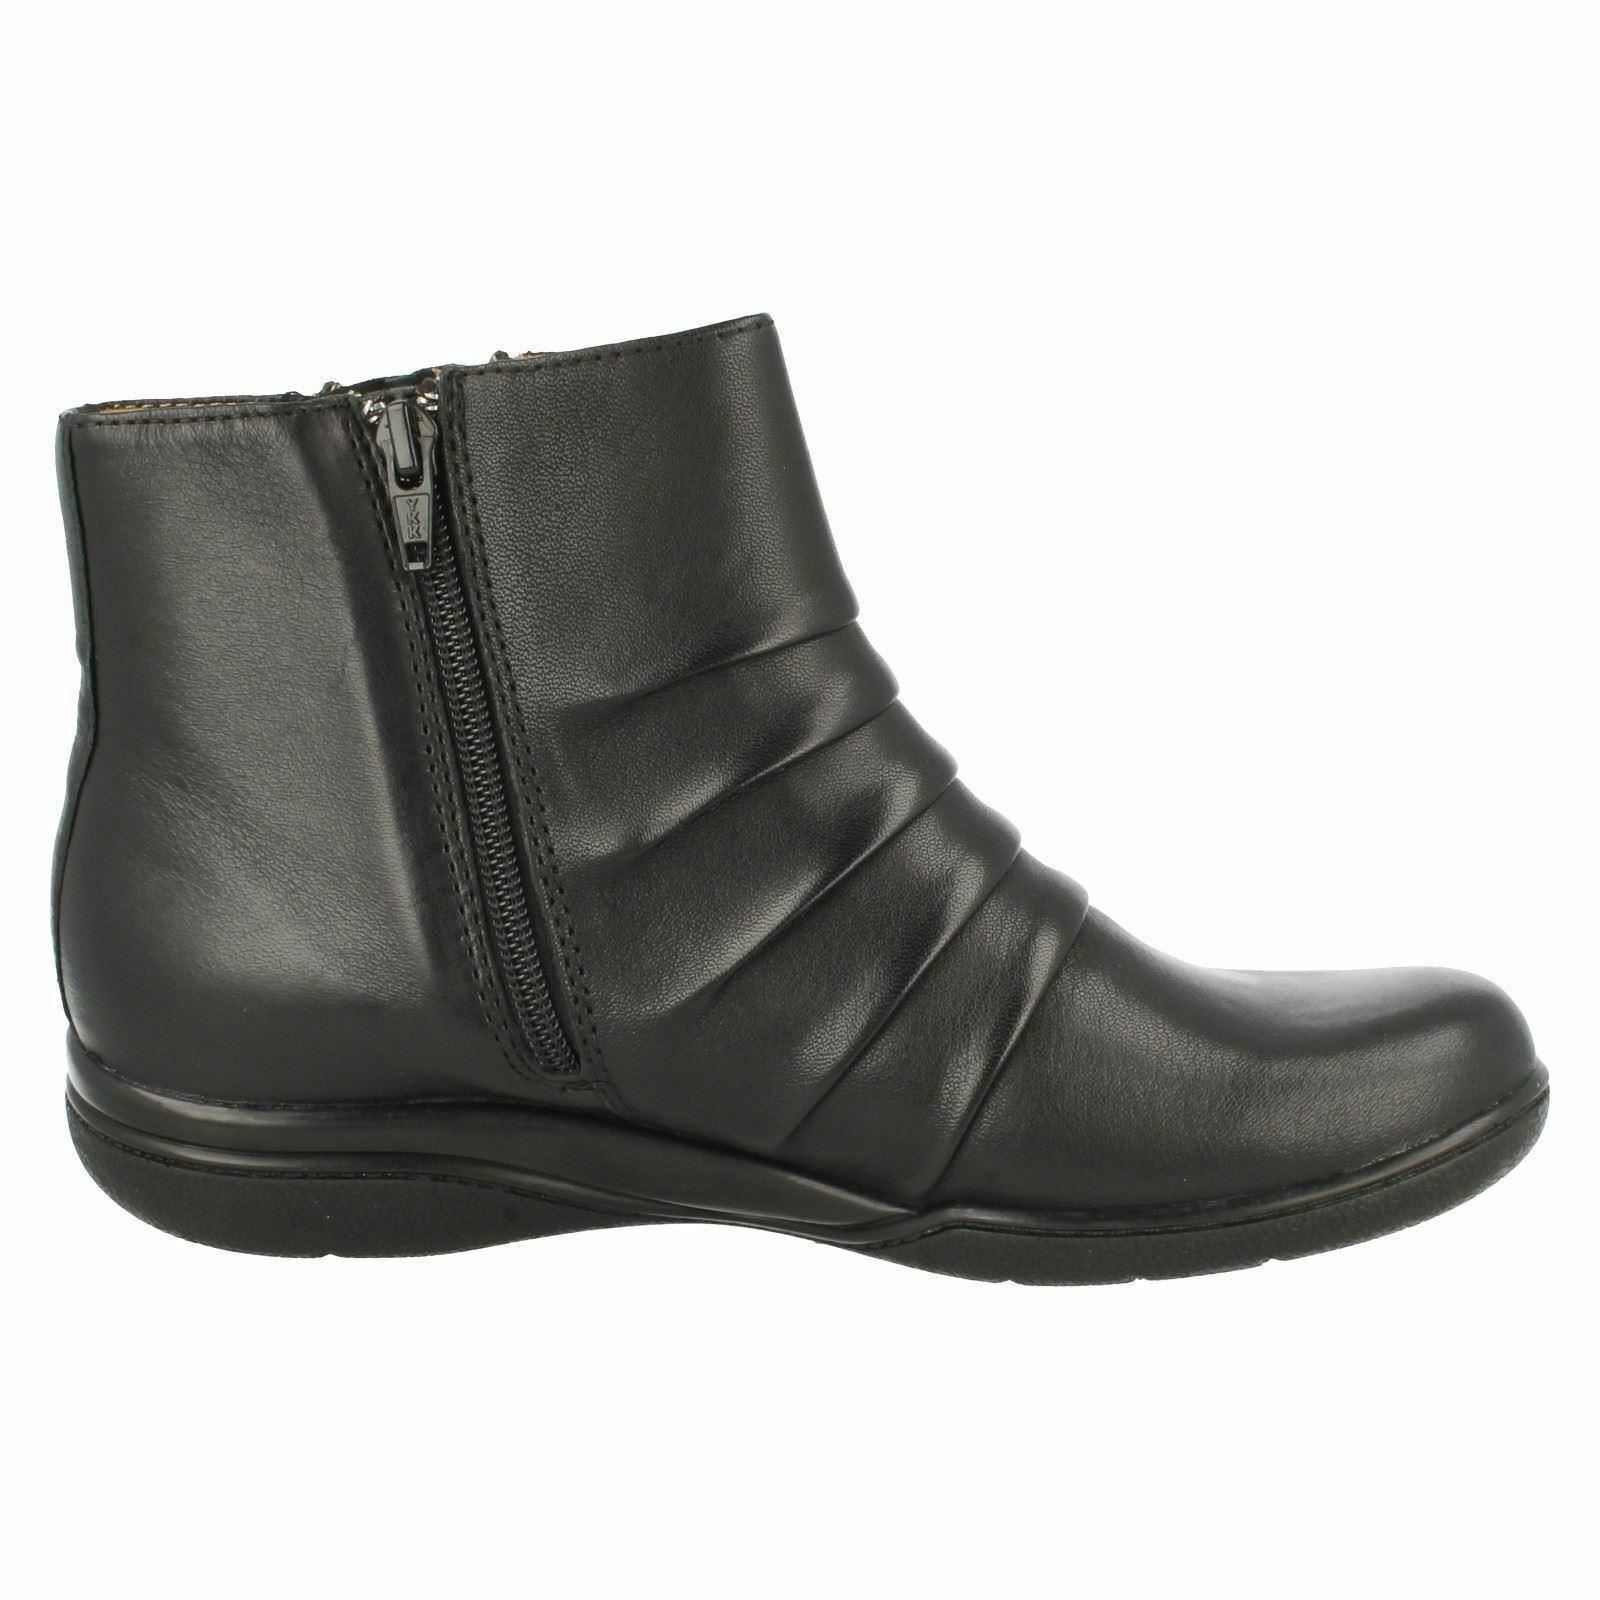 LADIES CLARKS BLACK LEATHER ANKLE BLUSH